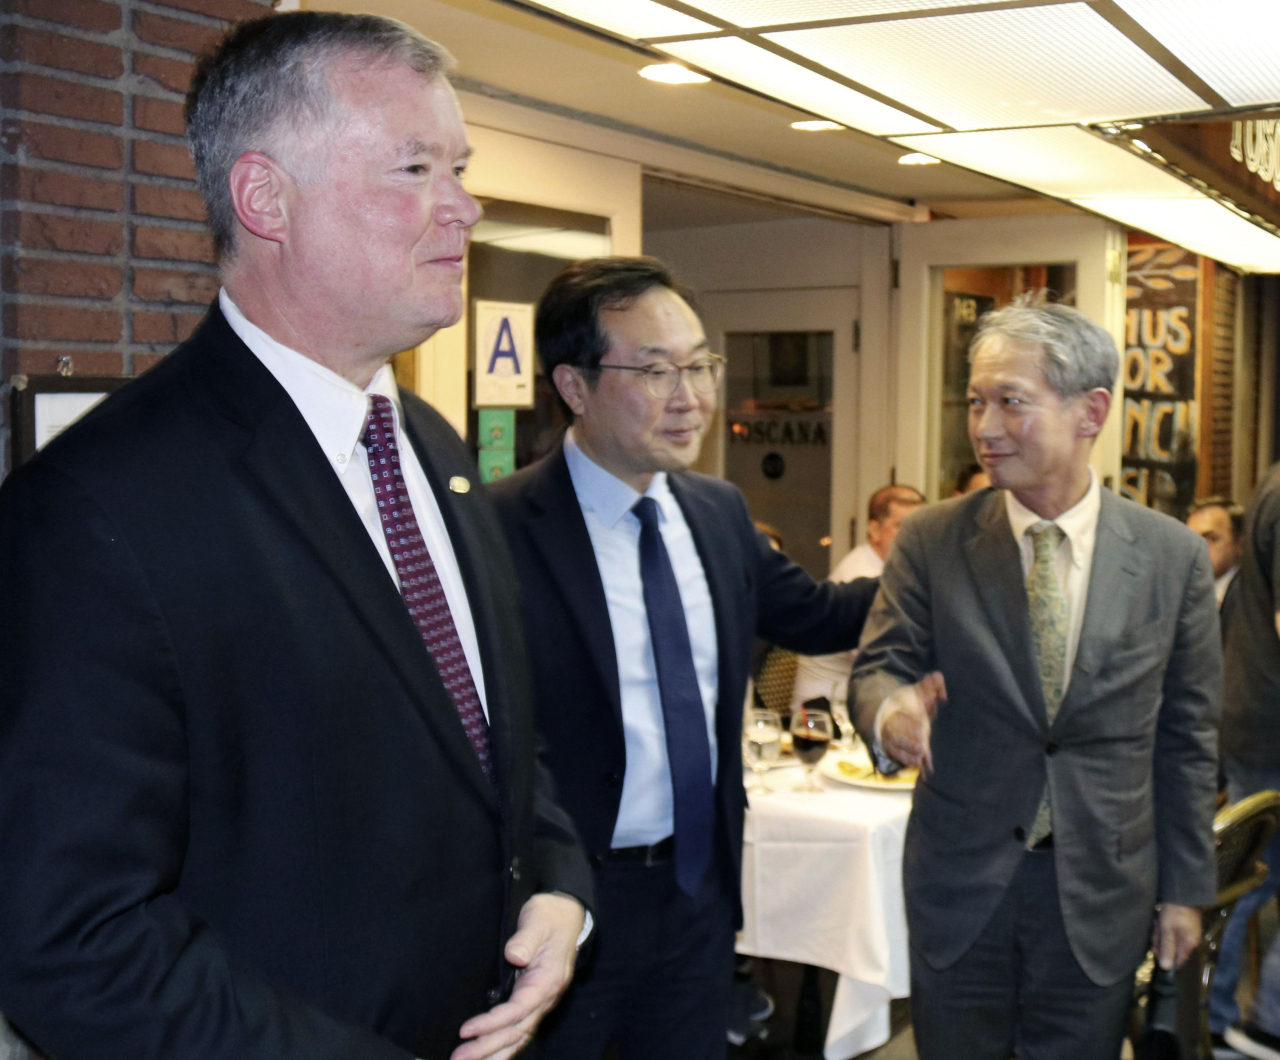 From left: US Special Representaive for North Korea Stephen Biegun, Special Representative for Korean Peninsula Peace and Security Affairs Lee Do-hoon, and Japanese Director General for Asian and Oceanian Affairs Shigeki Takizaki (Yonhap)